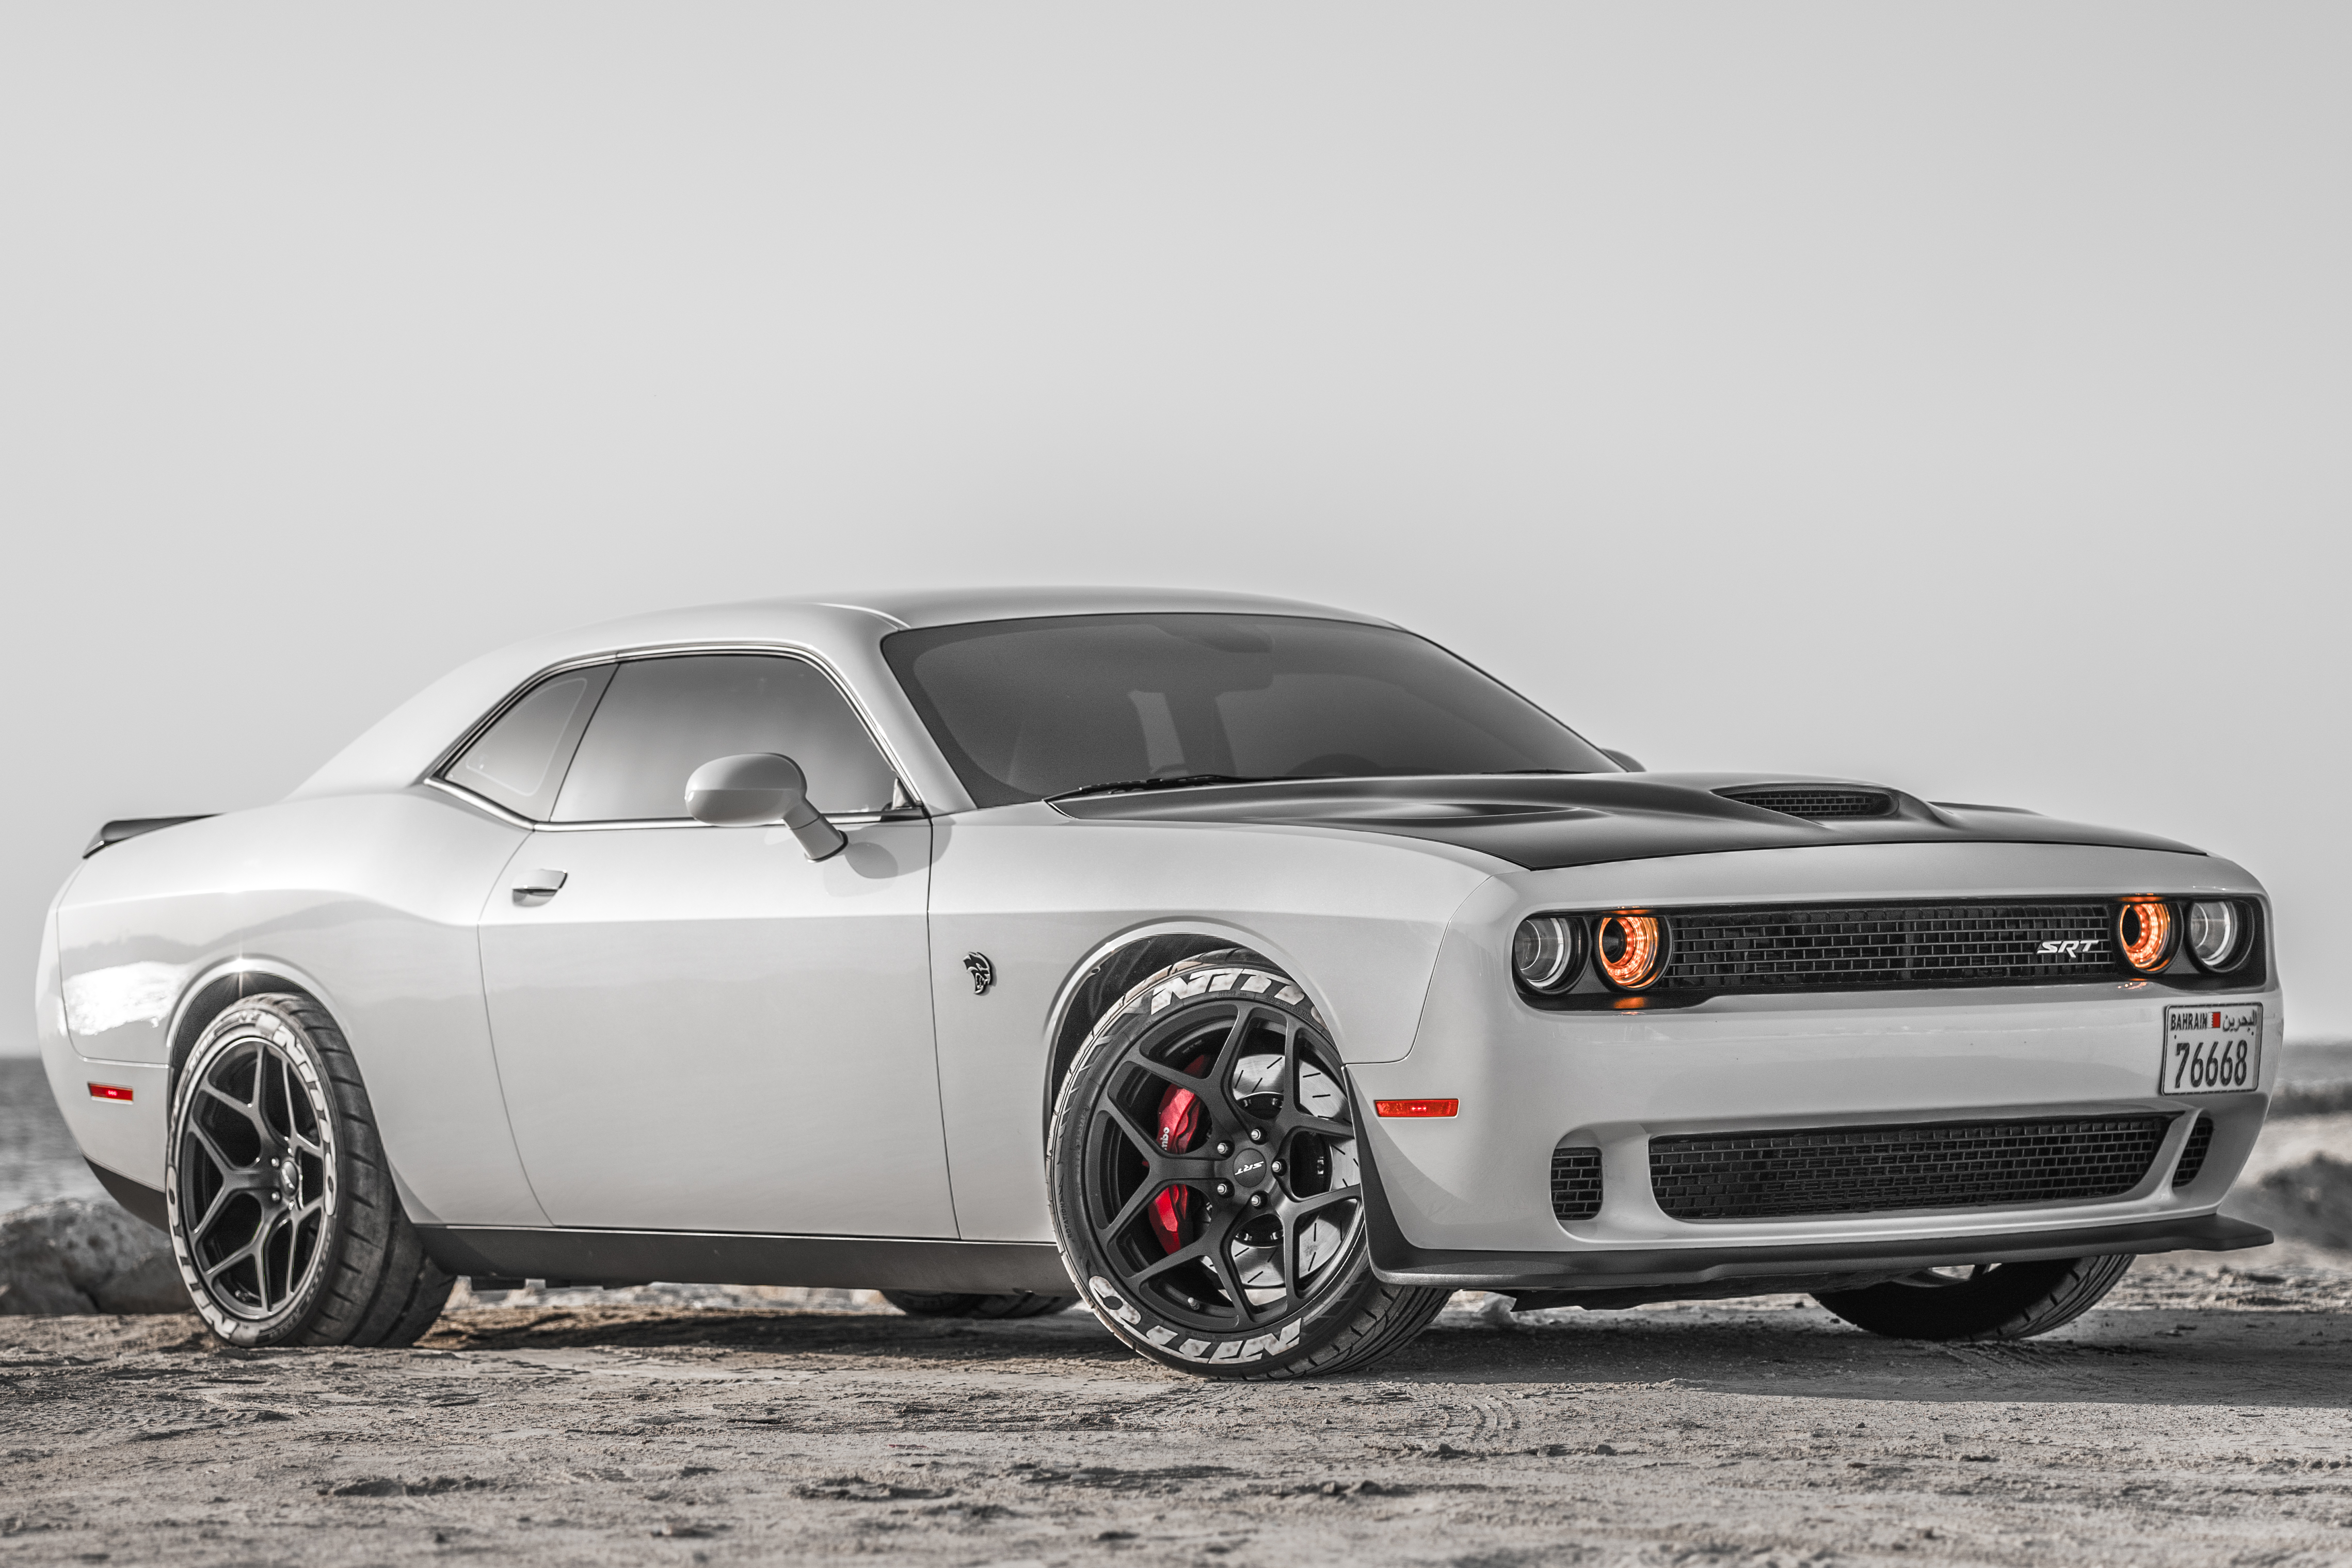 The Dos and Donts of Launching a Hellcat - Hot Rod Network